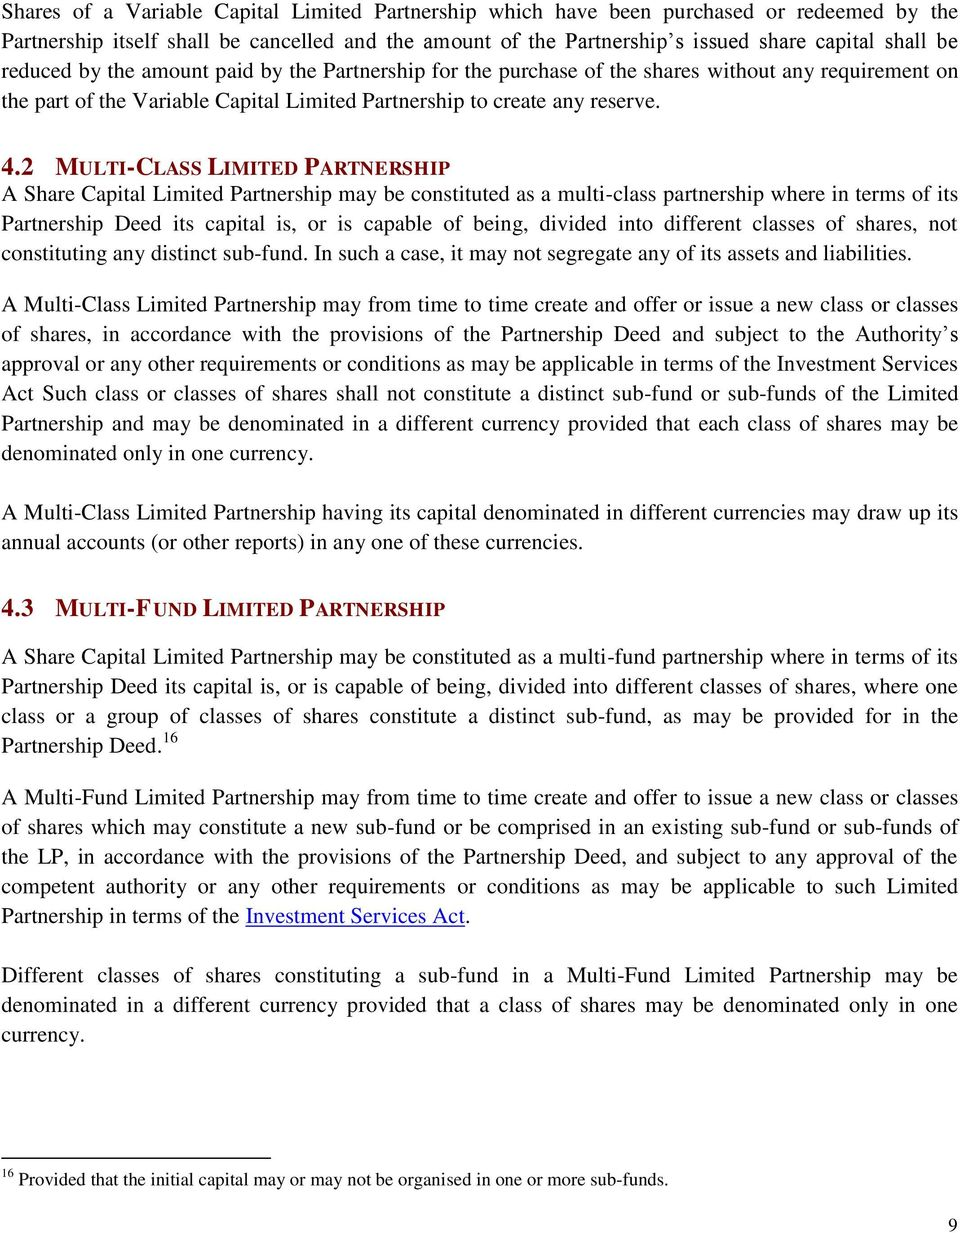 2 MULTI-CLASS LIMITED PARTNERSHIP A Share Capital Limited Partnership may be constituted as a multi-class partnership where in terms of its Partnership Deed its capital is, or is capable of being,